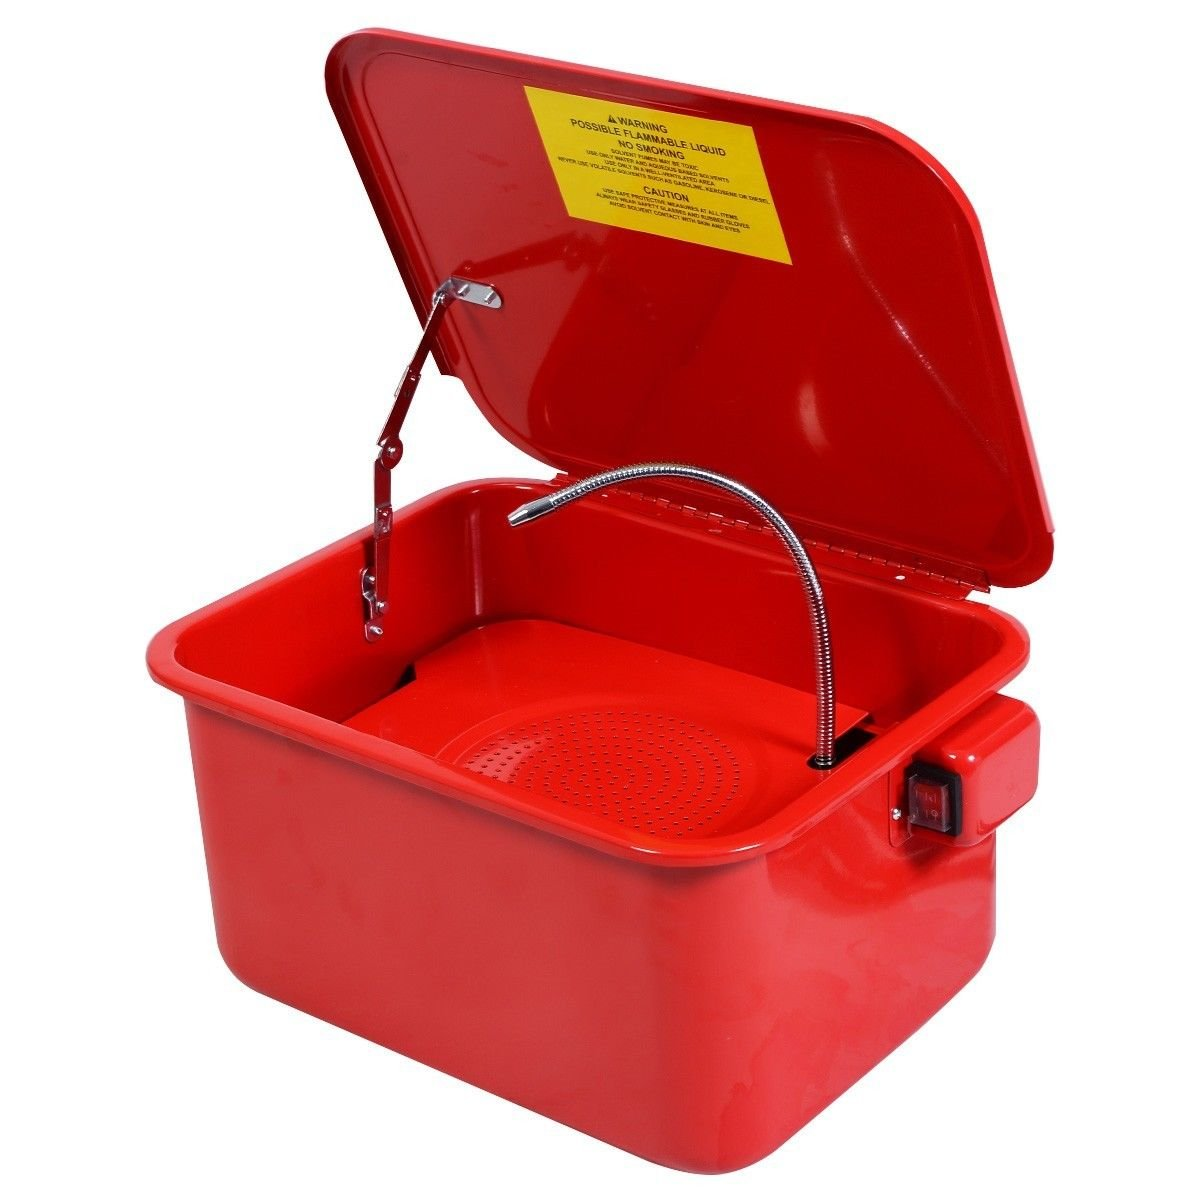 Globe House Products GHP 5-Gallon Tank Capacity 5.28GPM Steel Lid Fusible Link Portable Parts Washer